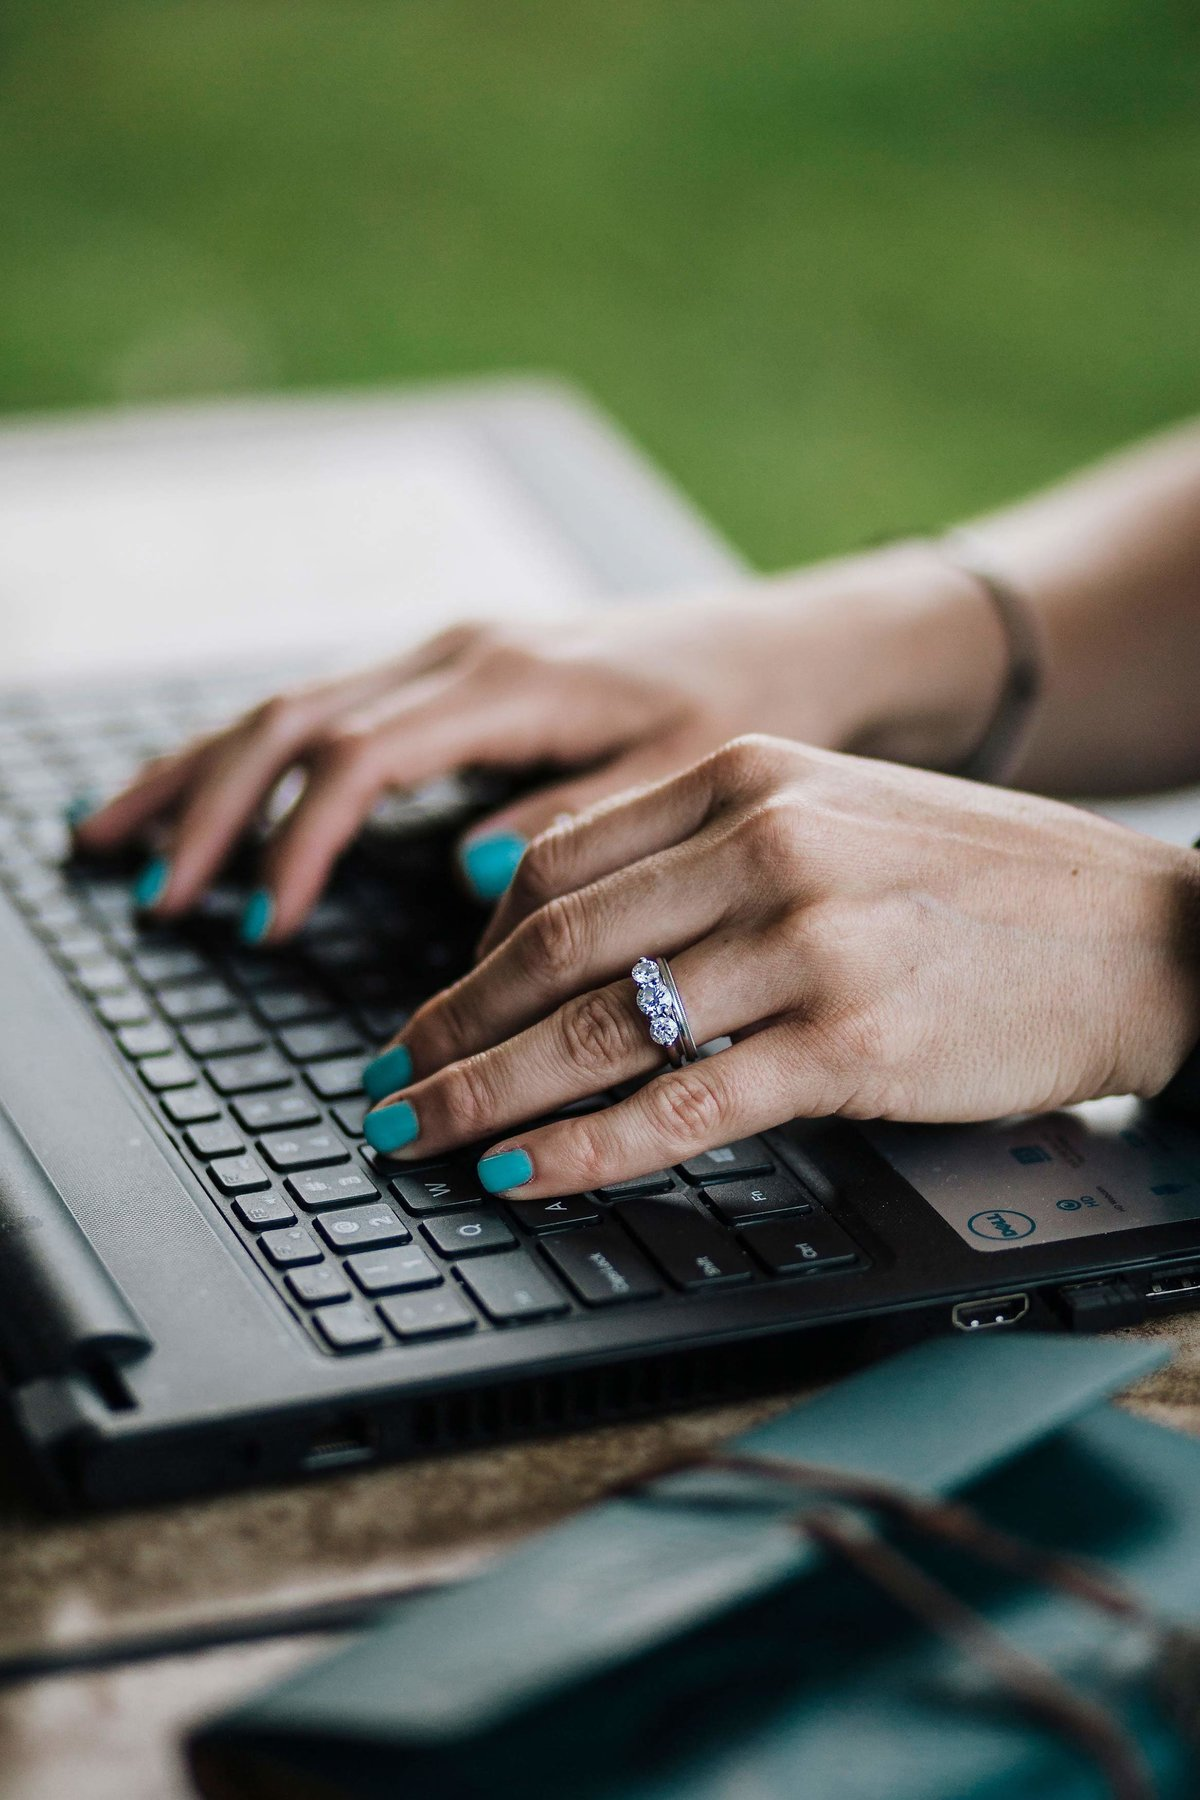 A woman's hands typing on a laptop.